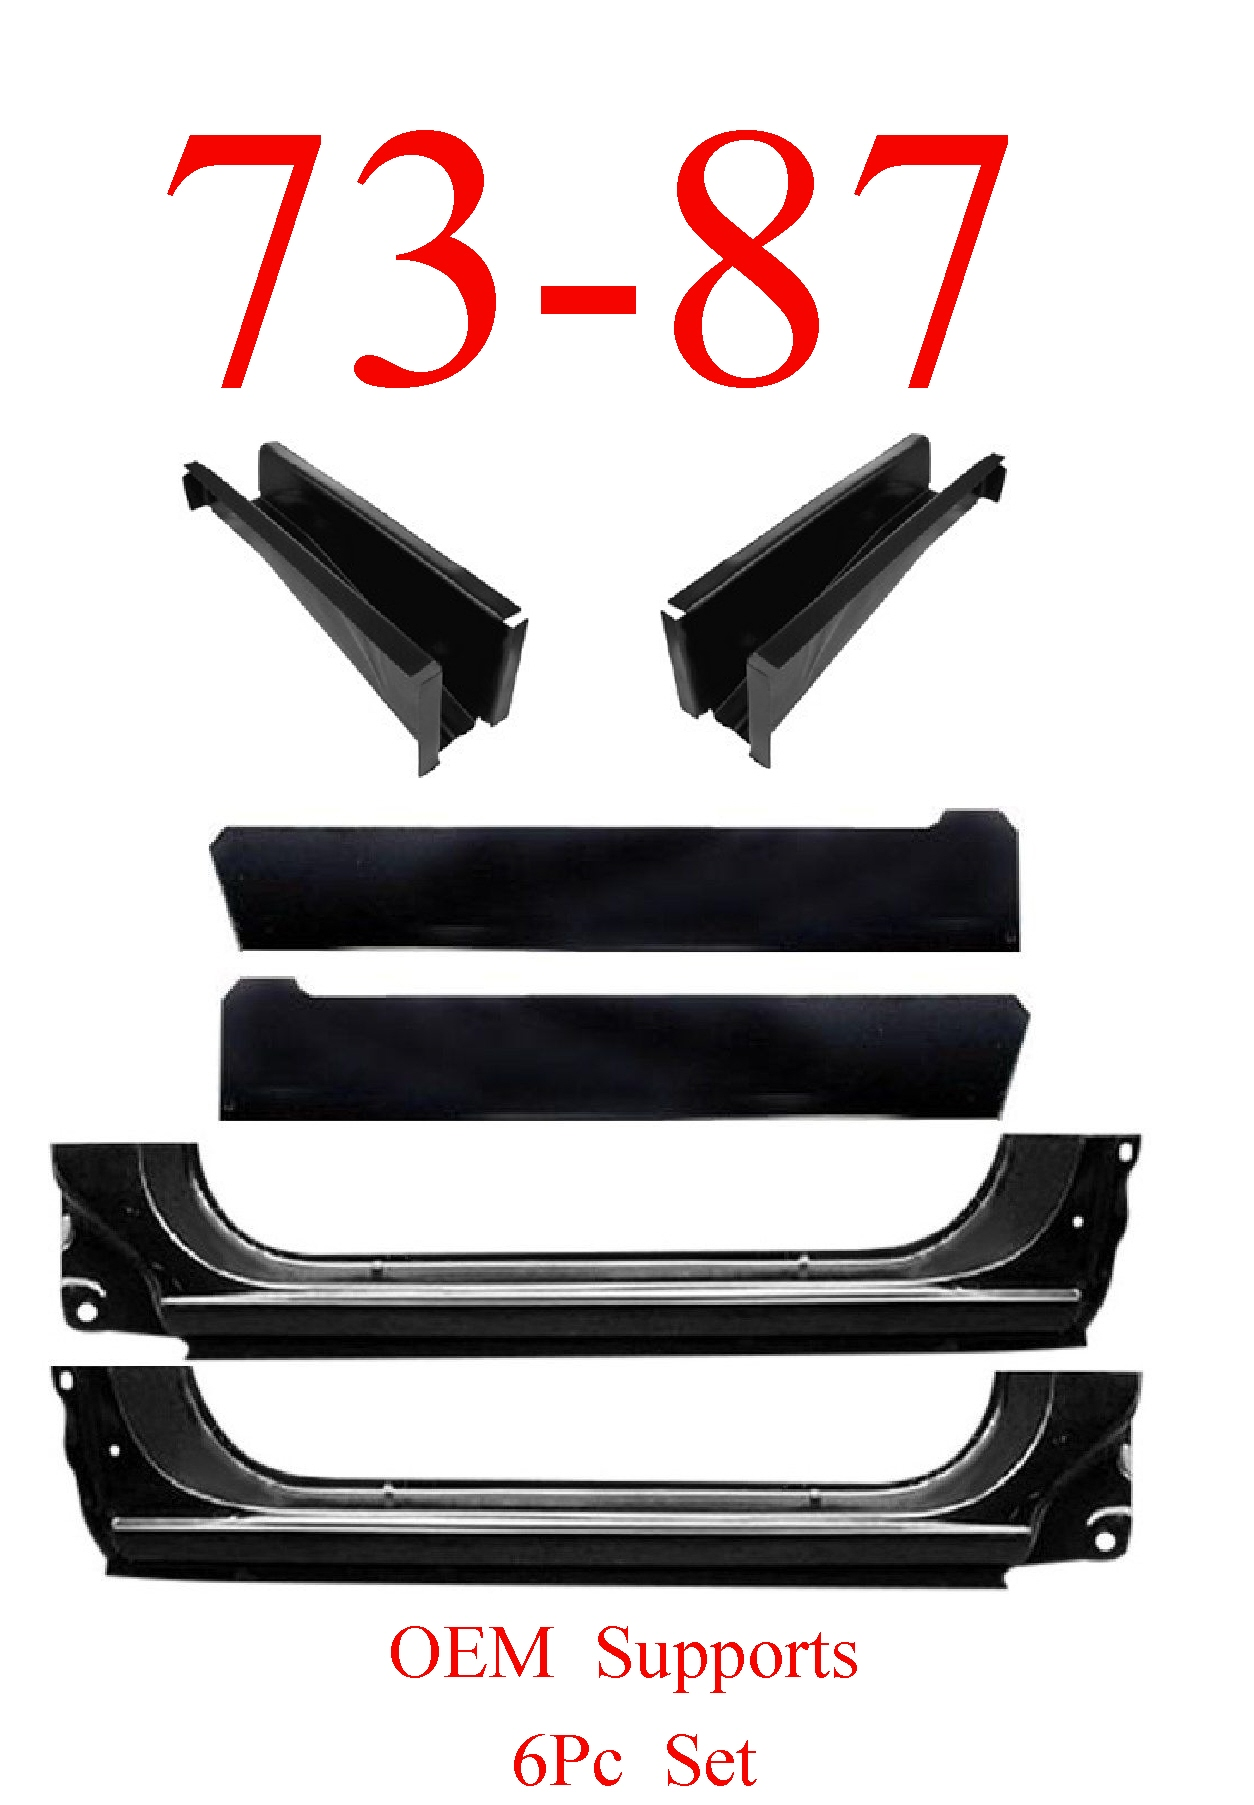 73-87 6Pc Chevy X-Rockers Inner Rockers Cab Floor Supports